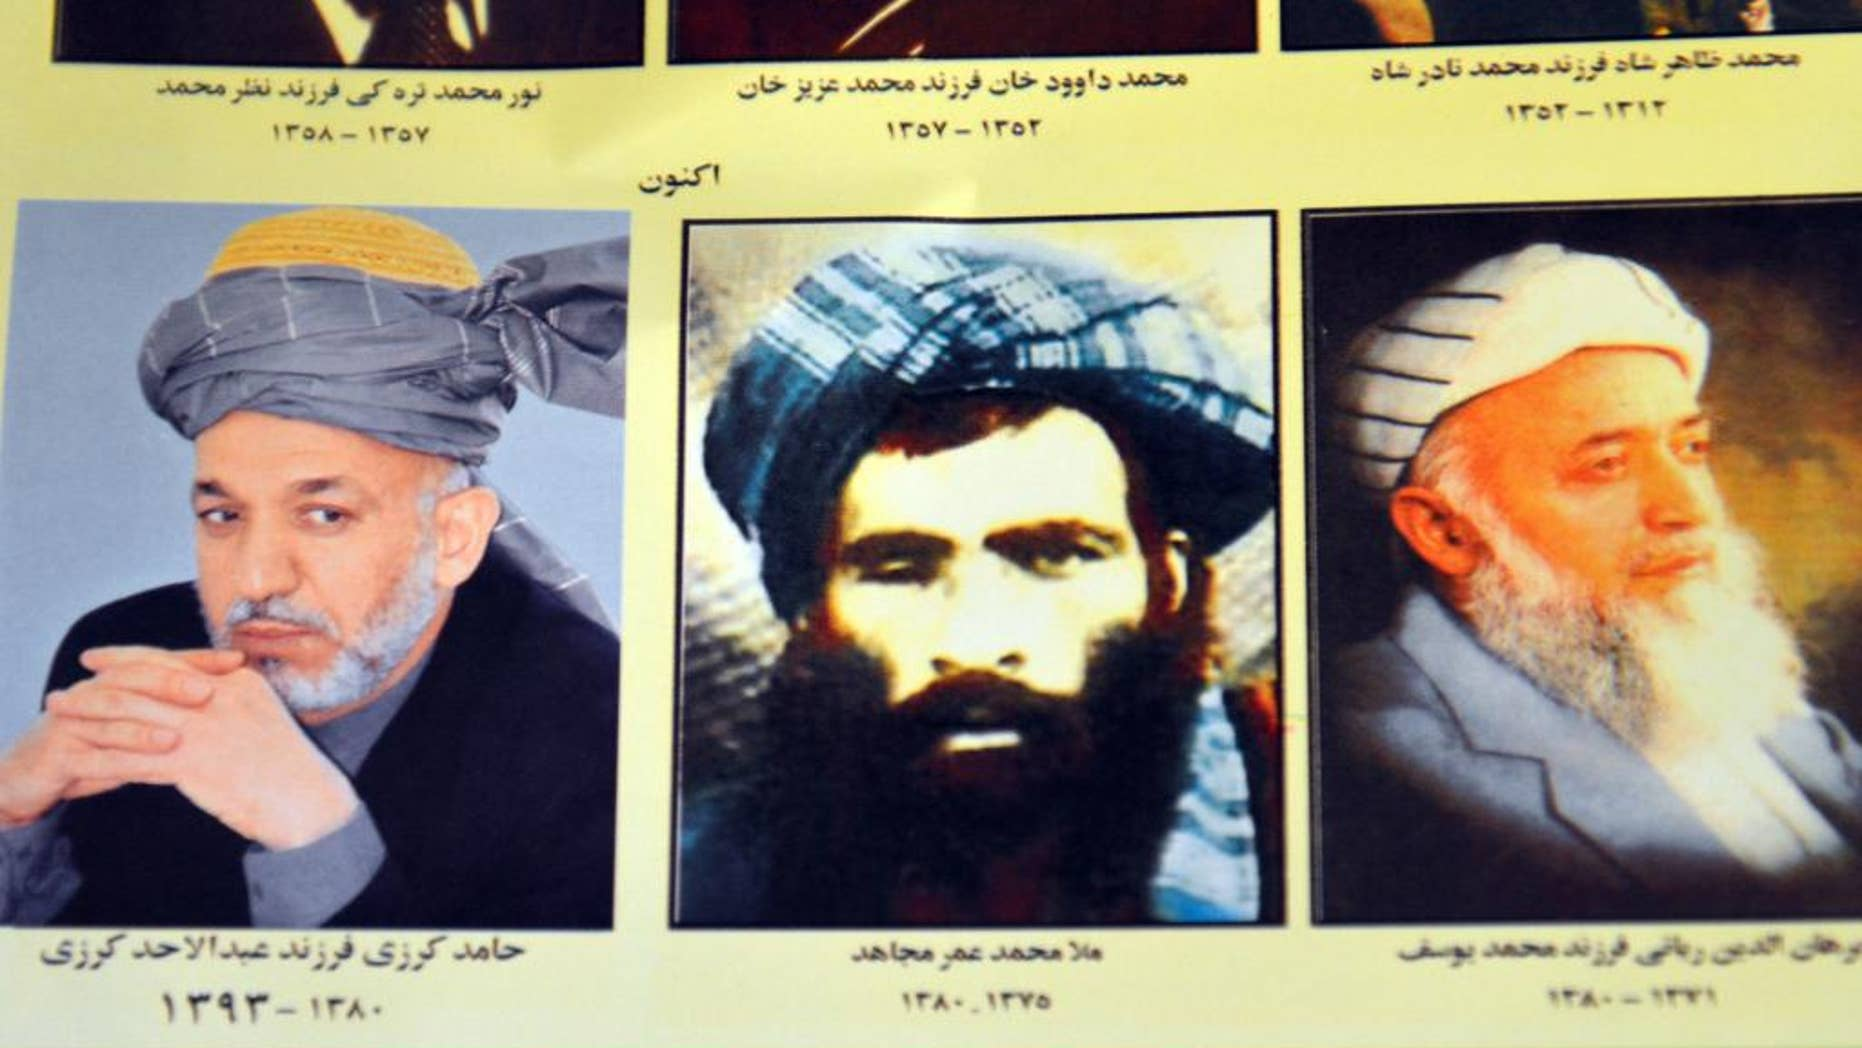 FILE - In this Thursday, July 30, 2015. file photo, an Afghan shop clerk shows a calendar with pictures of Afghan leaders including Mullah Mohammad Omar, center, in Kandahar, south of Kabul, Afghanistan. The new leader of the Afghan Taliban faces the challenge of bringing together an insurgency that he ran under another's name and uniting a fractured movement that has seen fighters desert for more extreme groups such as the Islamic State. For its part, the Afghan government believes it can seize the on the crisis it has created by announcing that Mullah Mohammad Omar has been dead for more than two years ago to further weaken the insurgency by exposing the lie that had been holding it together. (AP Photo/Barialai Khoshhal, File)